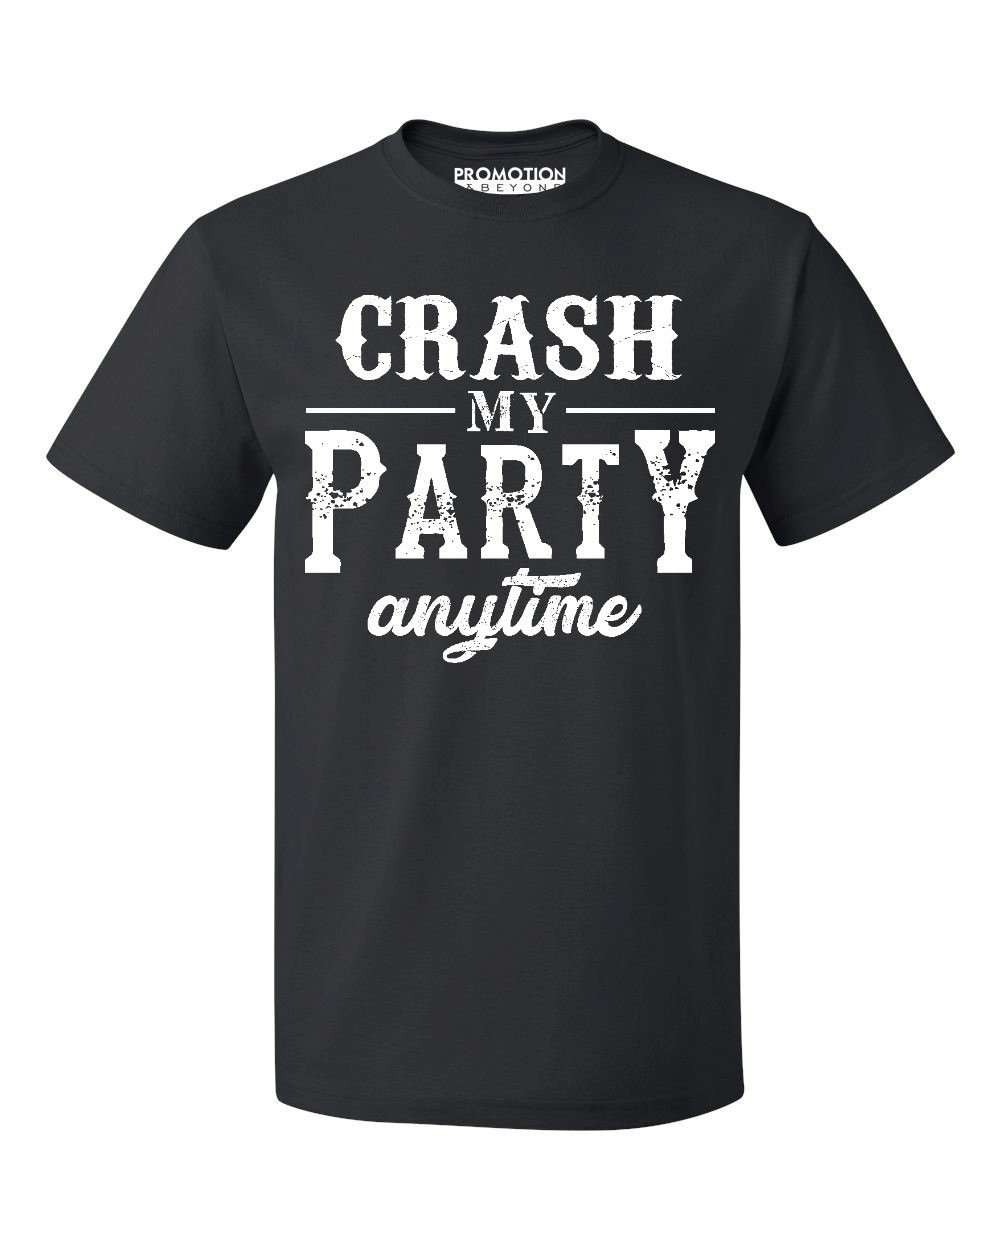 P B Crash My Party Anytime Funny T Shirt 1222